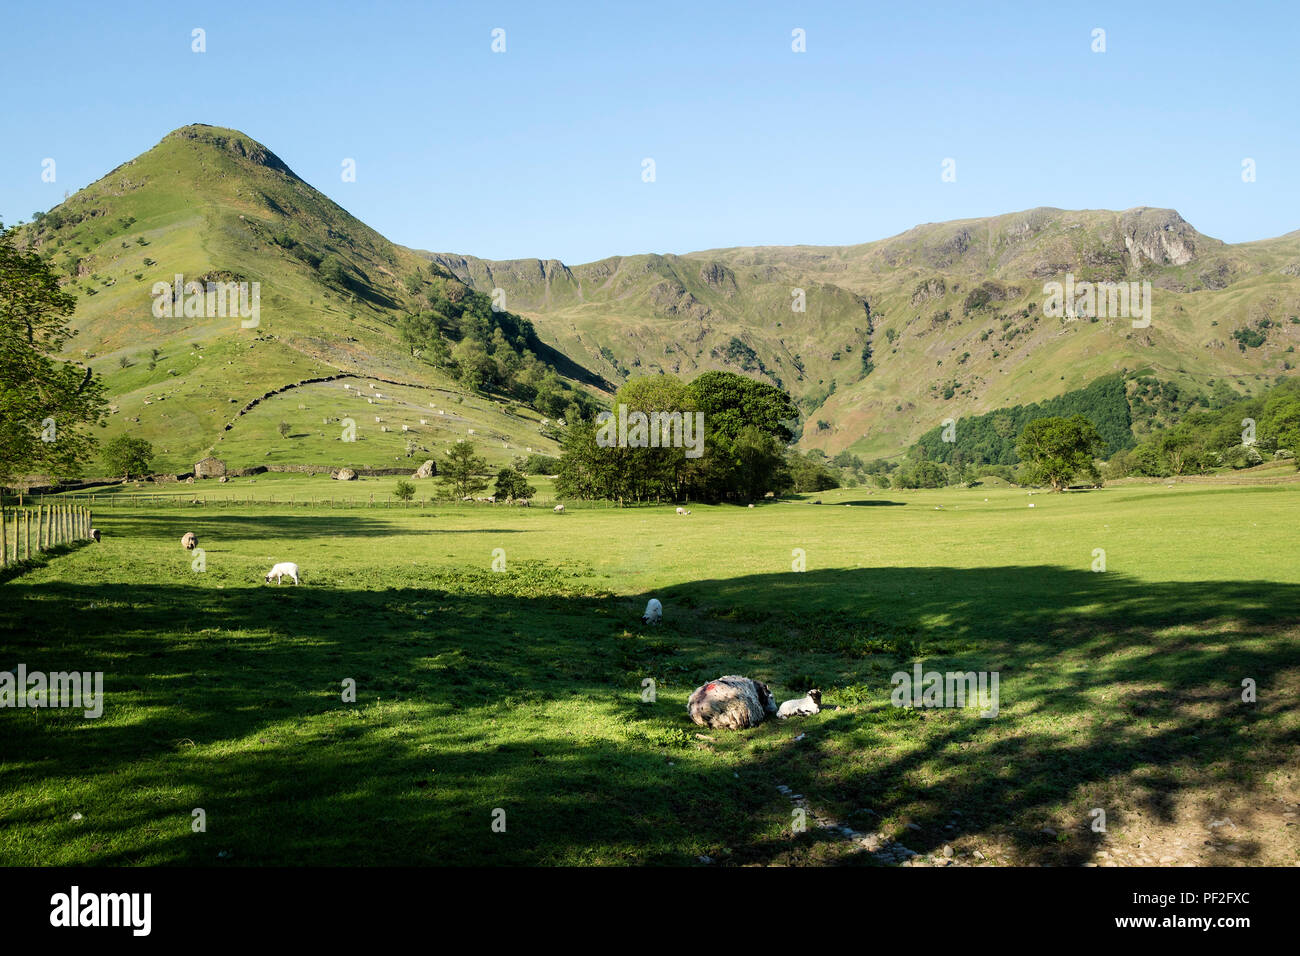 High Hartsop Dodd (left) and the Ridge to Dove Crag (right), Viewed From Sykeside, Lake District, Cumbria, UK - Stock Image